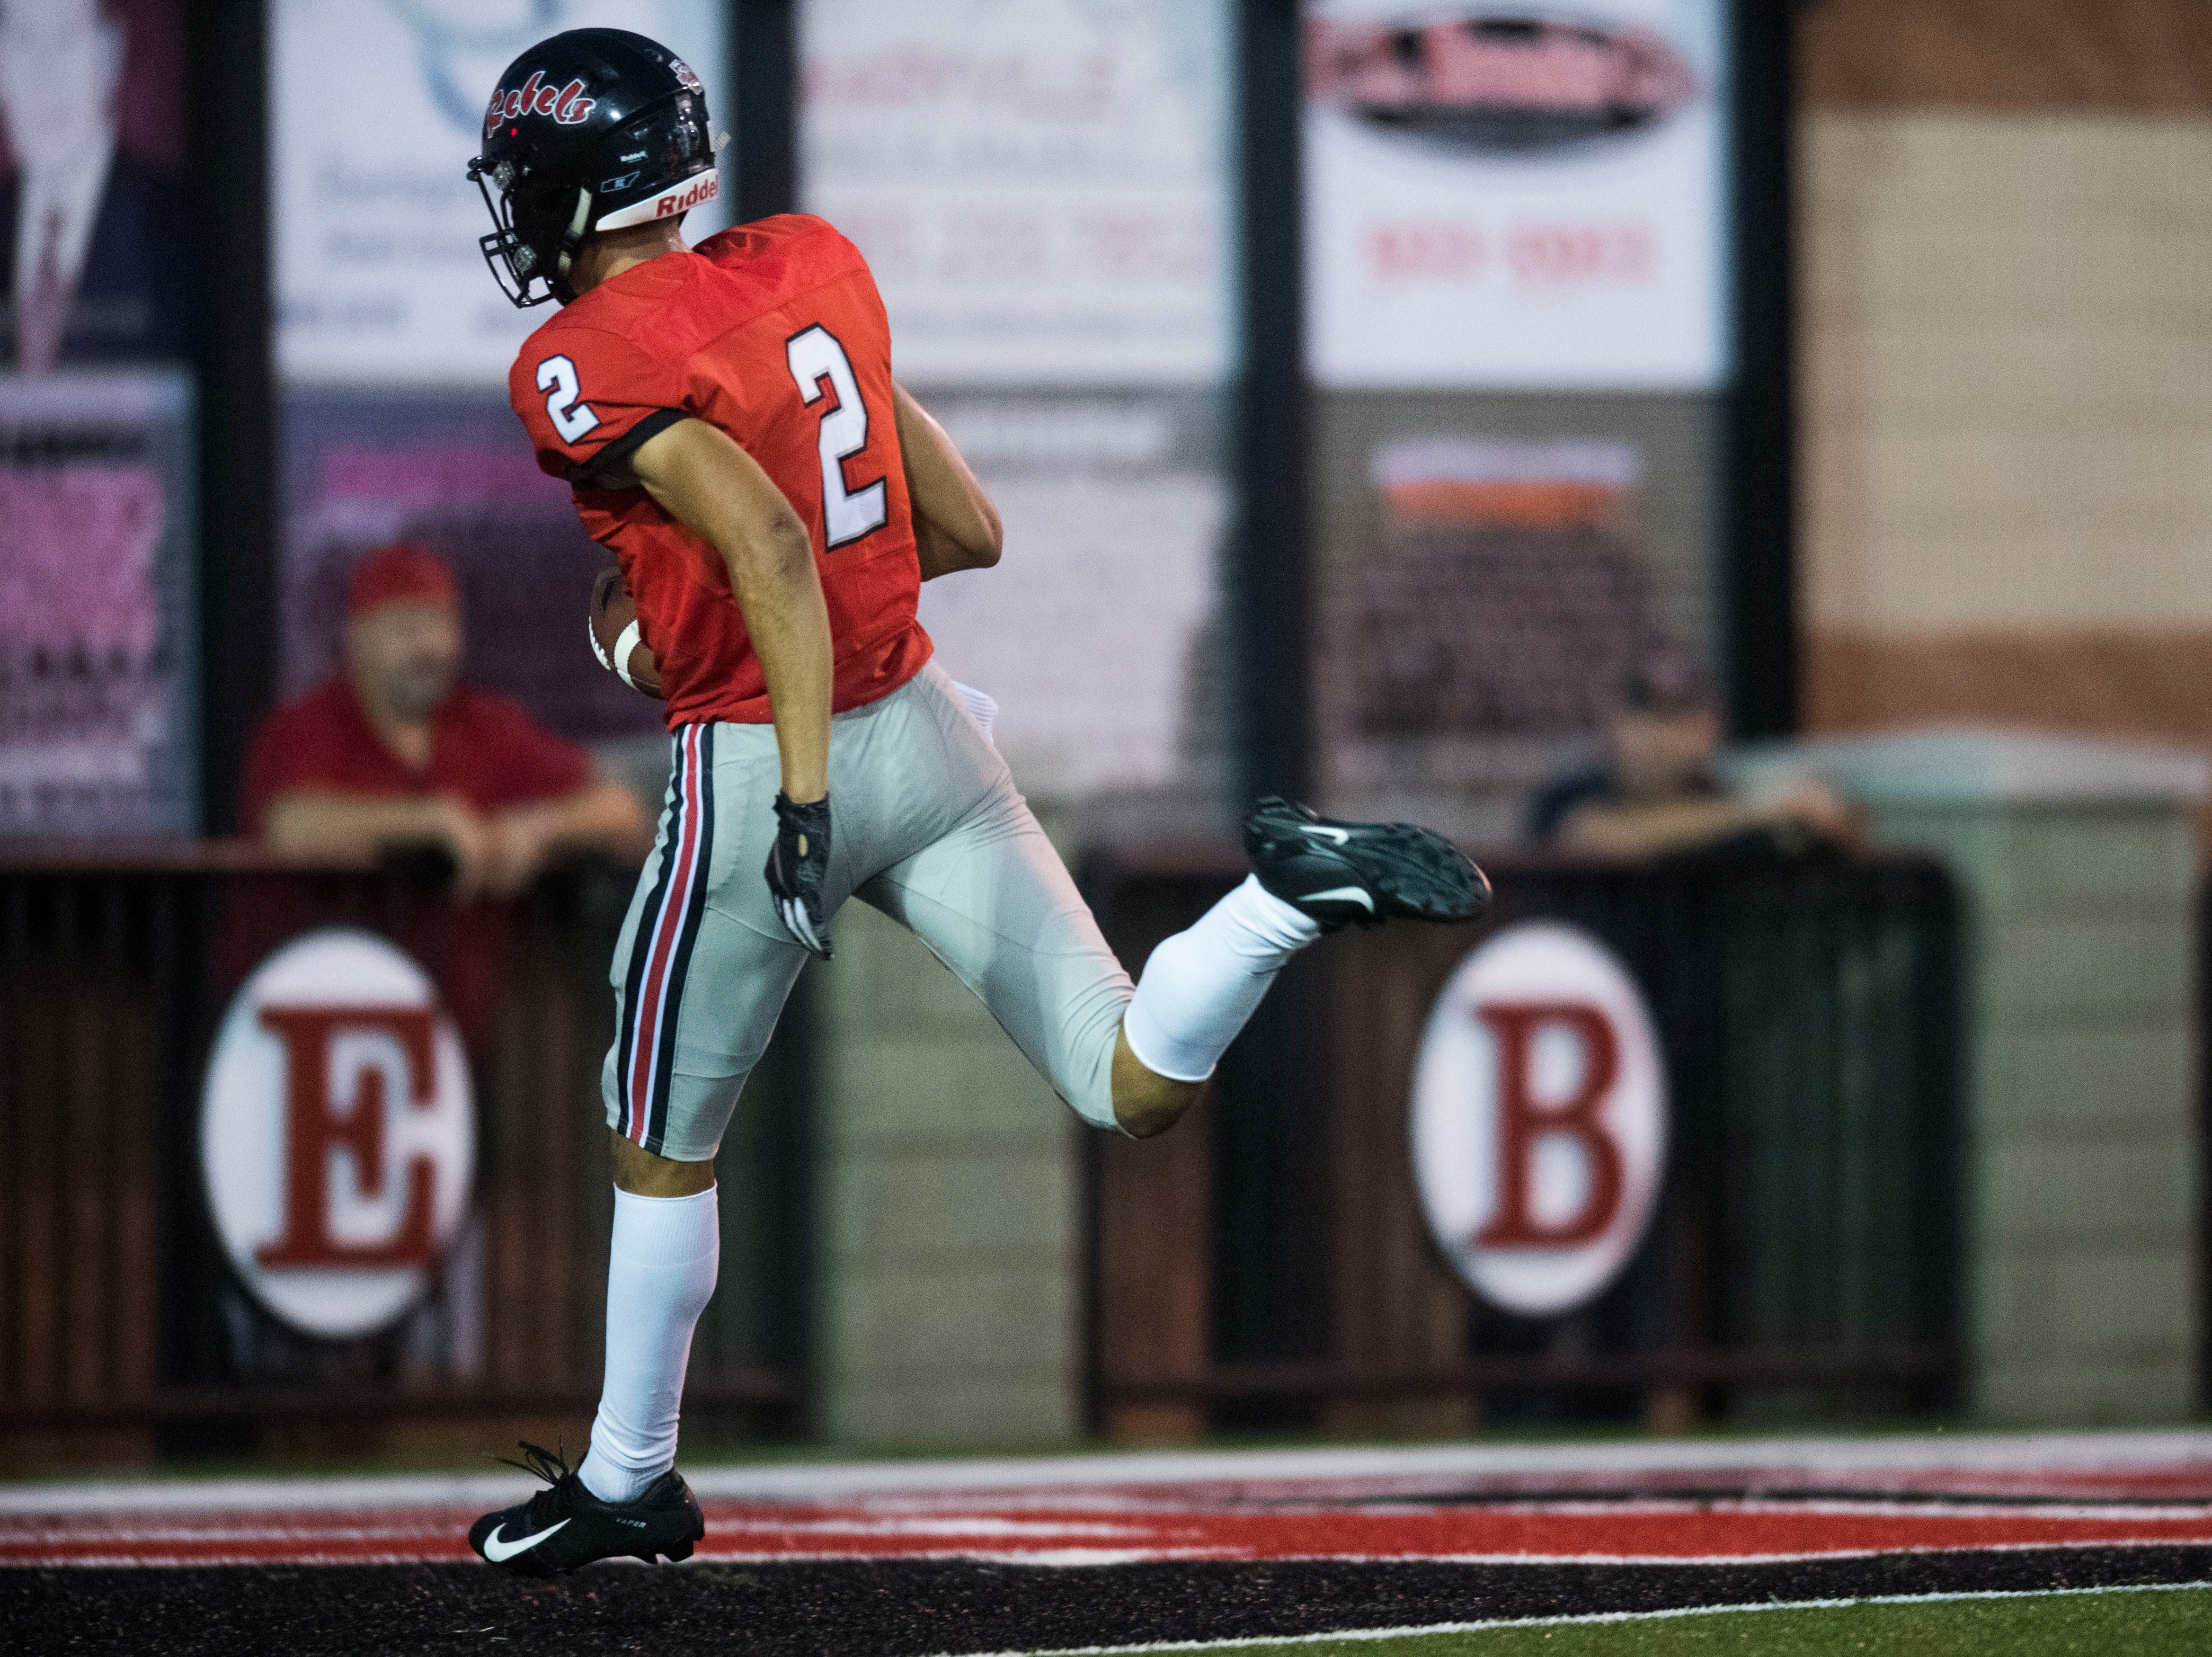 Maryville's Ashton Maples (2) runs into the end zone for a touchdown during a game between Cleveland and Maryville at Maryville Thursday, Oct. 4, 2018. Maryville defeated Cleveland 42-7.